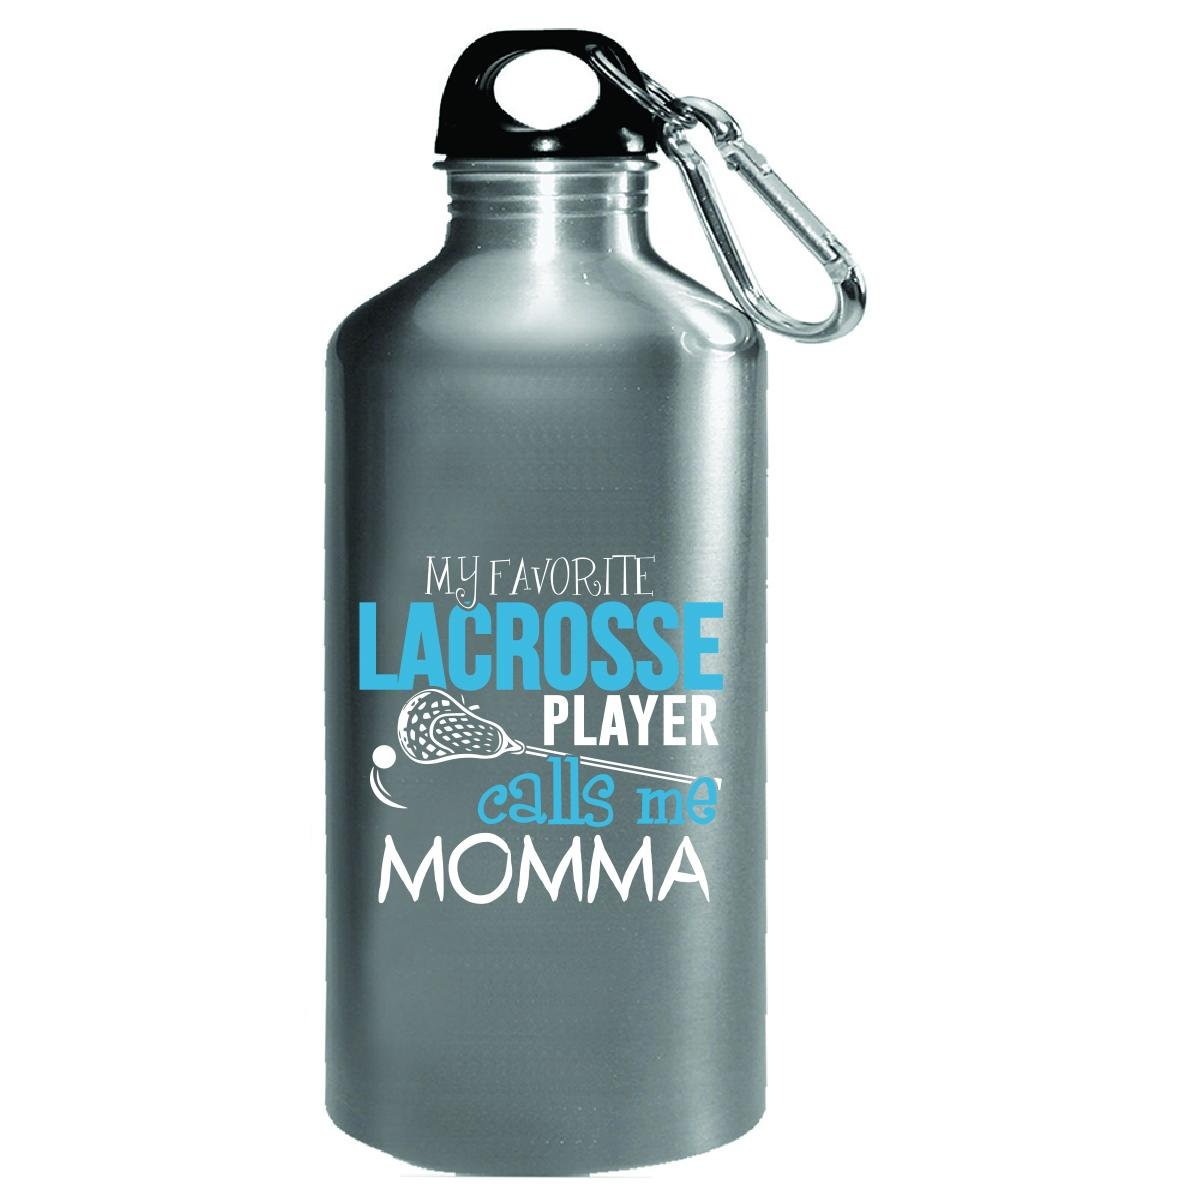 My Favorite Lacrosse Player Calls Me Momma - Water Bottle